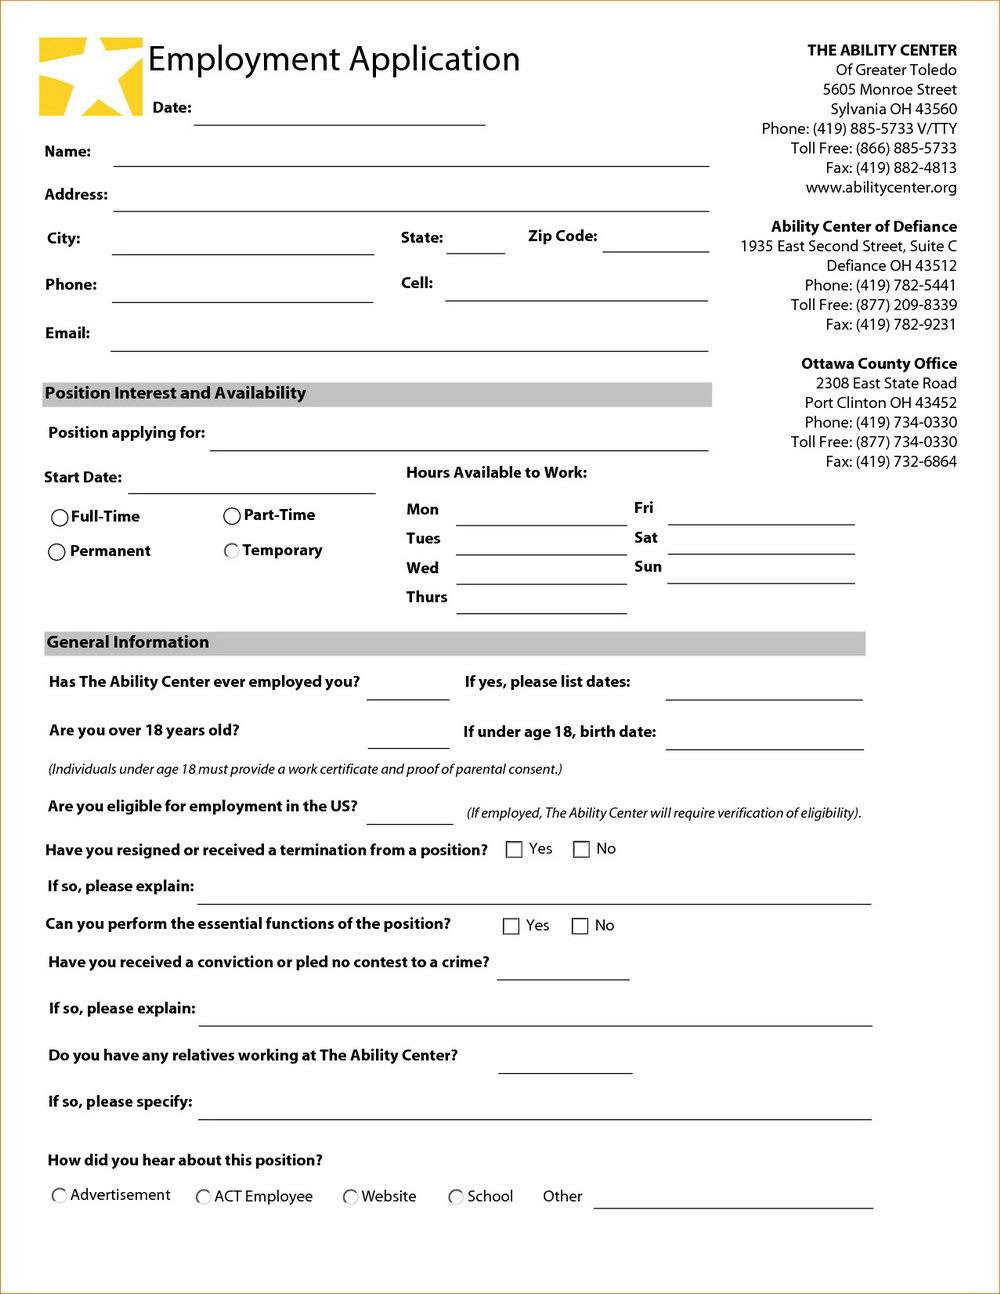 Rgis Job Application Form